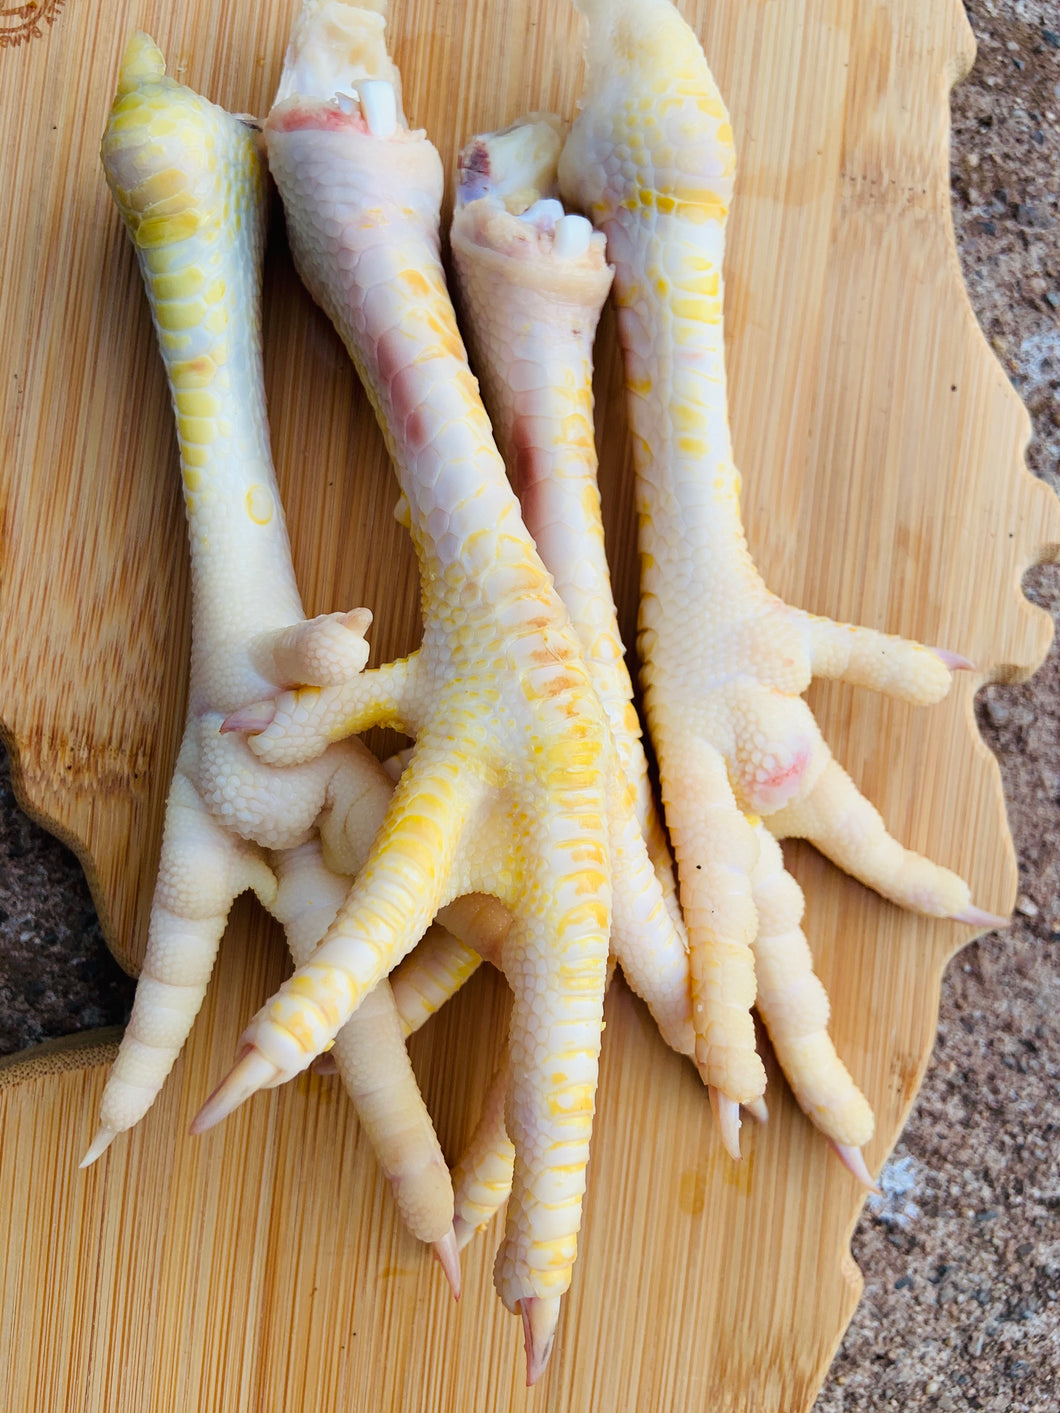 Chicken feet cleaned per lb